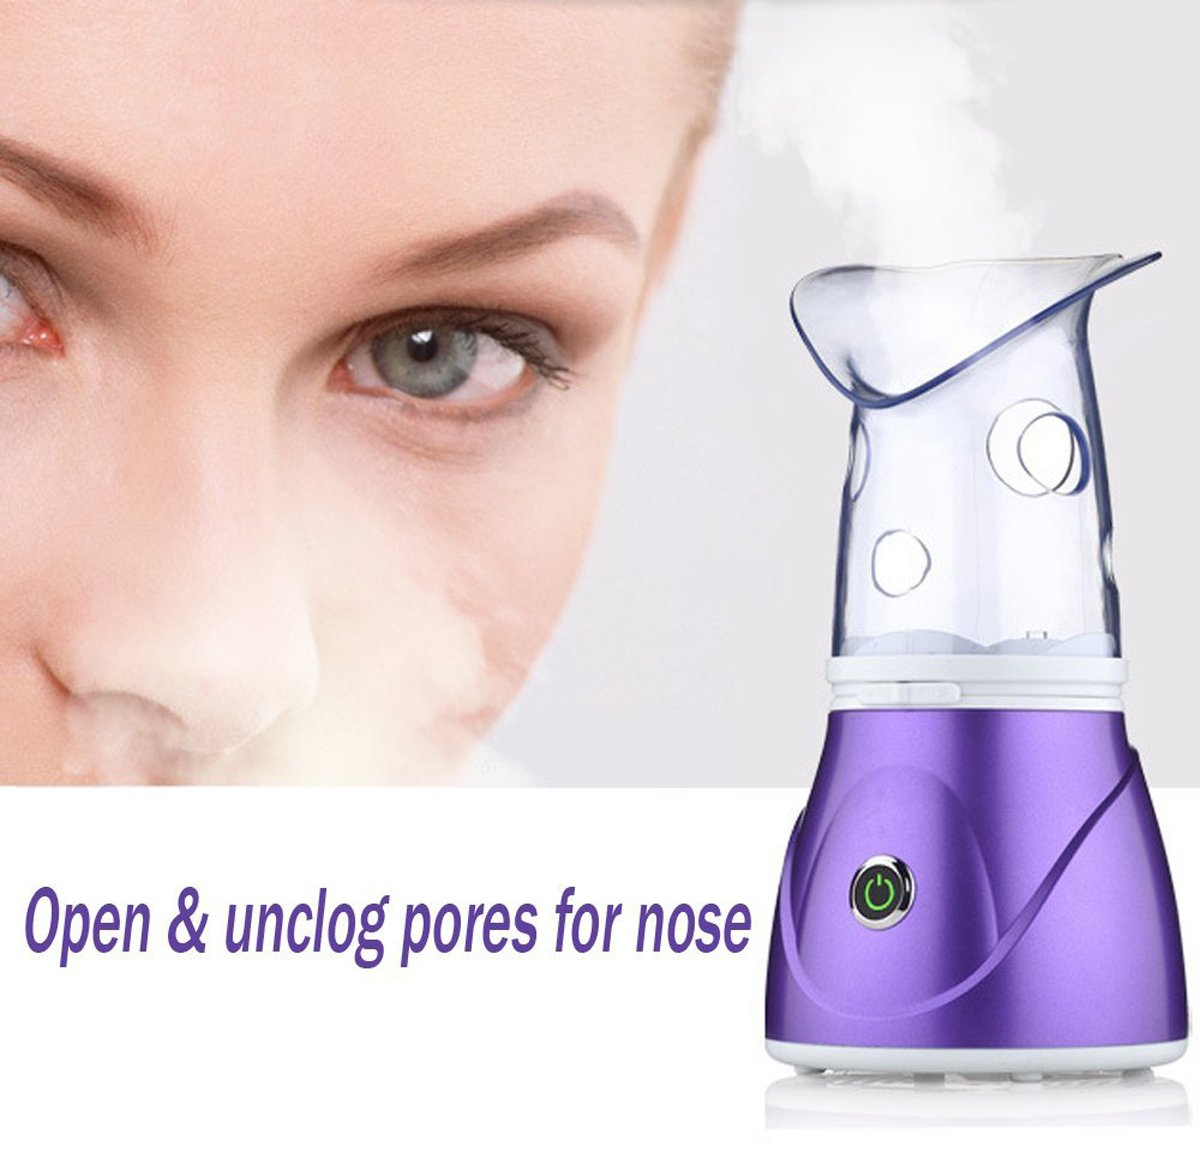 Facial Steamer, szwintec Professional Sinus Steam Inhaler Face Skin Moisturizer Facial Mask Sauna Spa Steamers Sprayer with Aromatherapy Diffuser Humidifier Function by szwintec (Image #6)